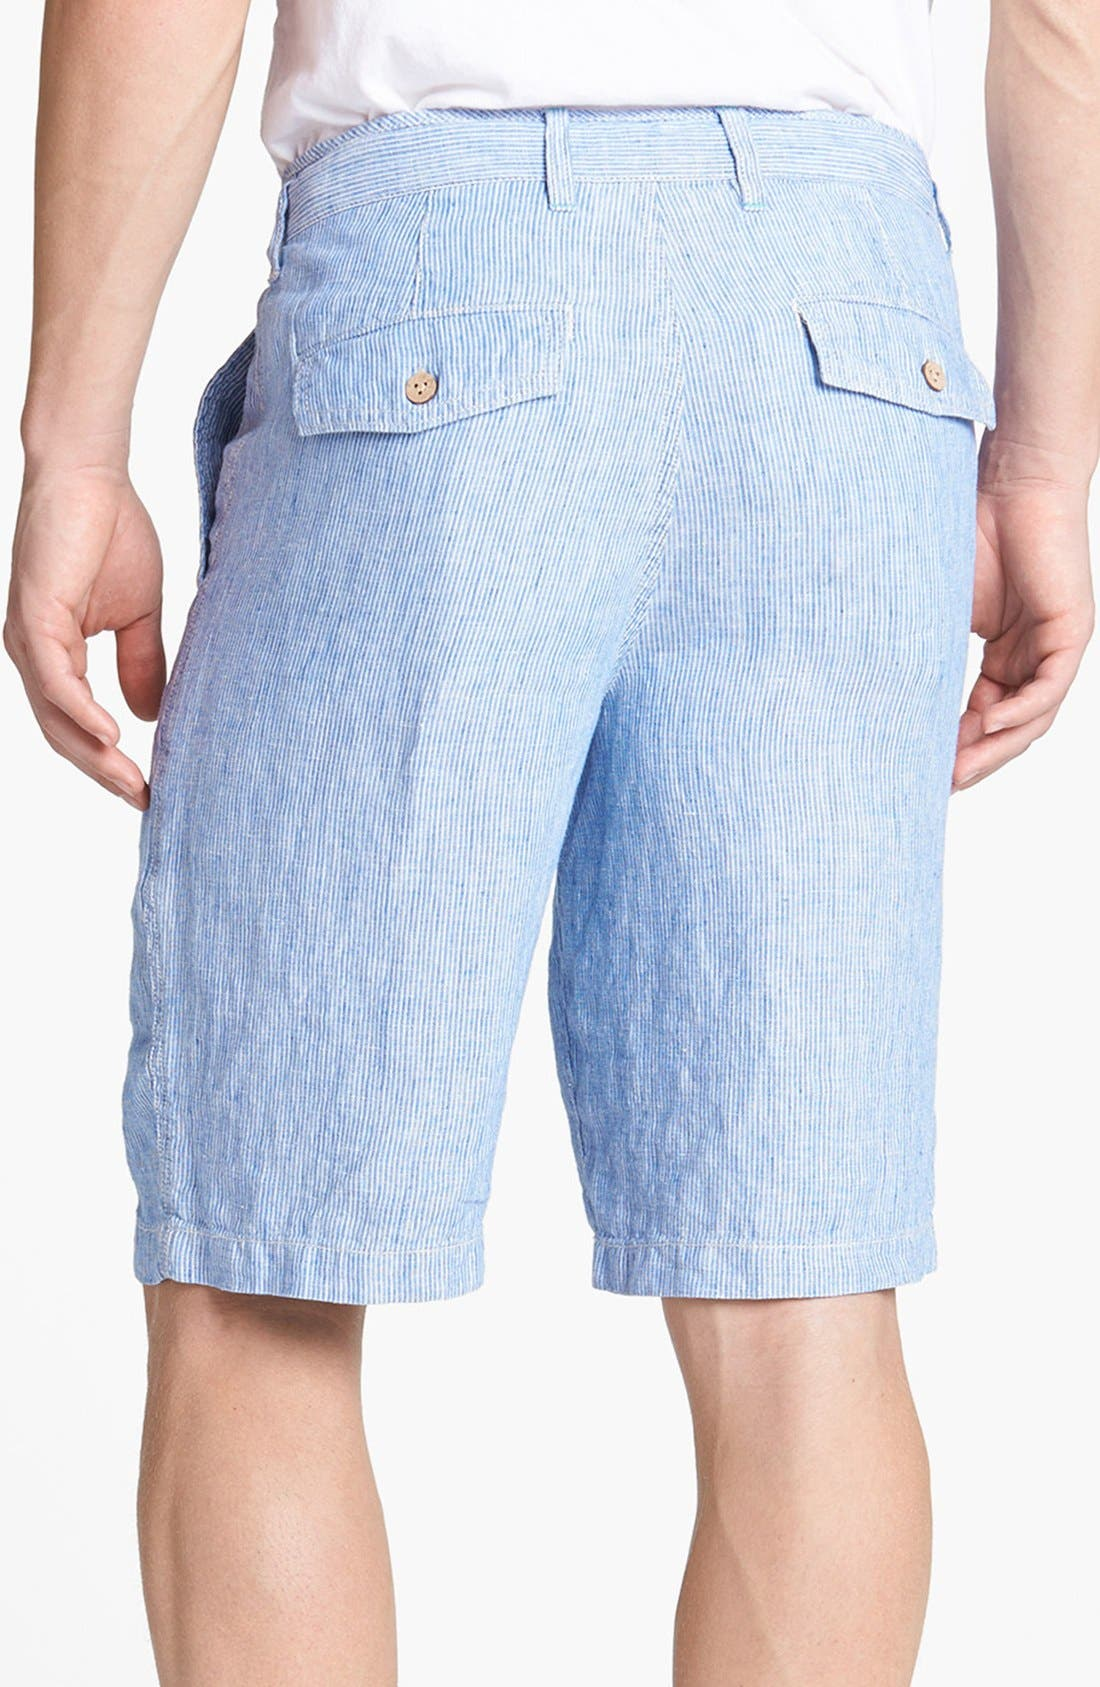 Alternate Image 2  - Tommy Bahama 'Line of the Times' Relaxed Fit Striped Linen Shorts